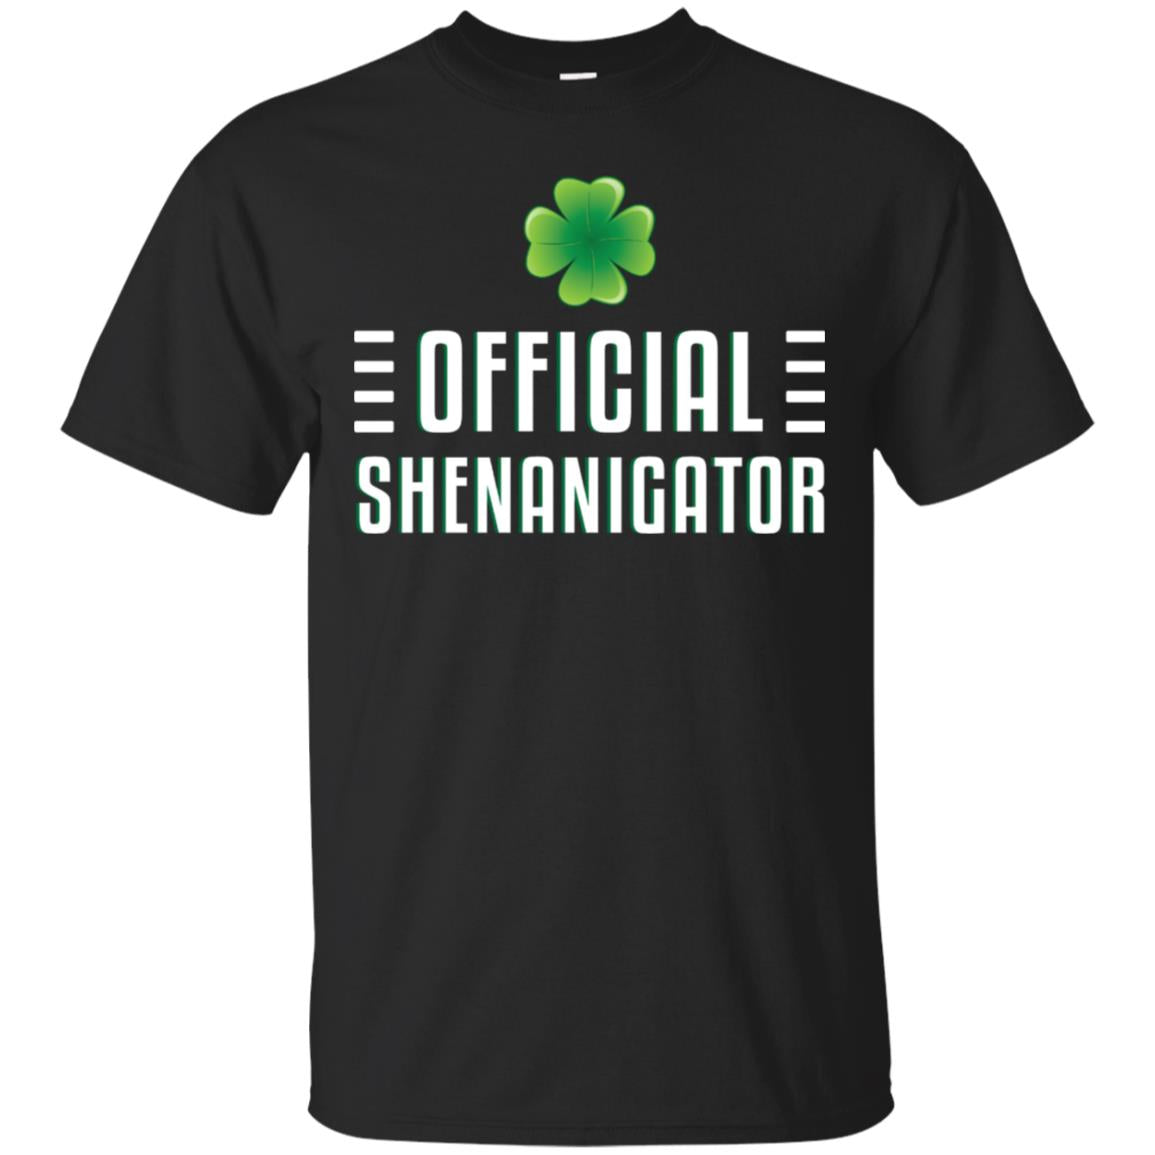 Official Shenanigator T-Shirt for those party goers of March 99promocode